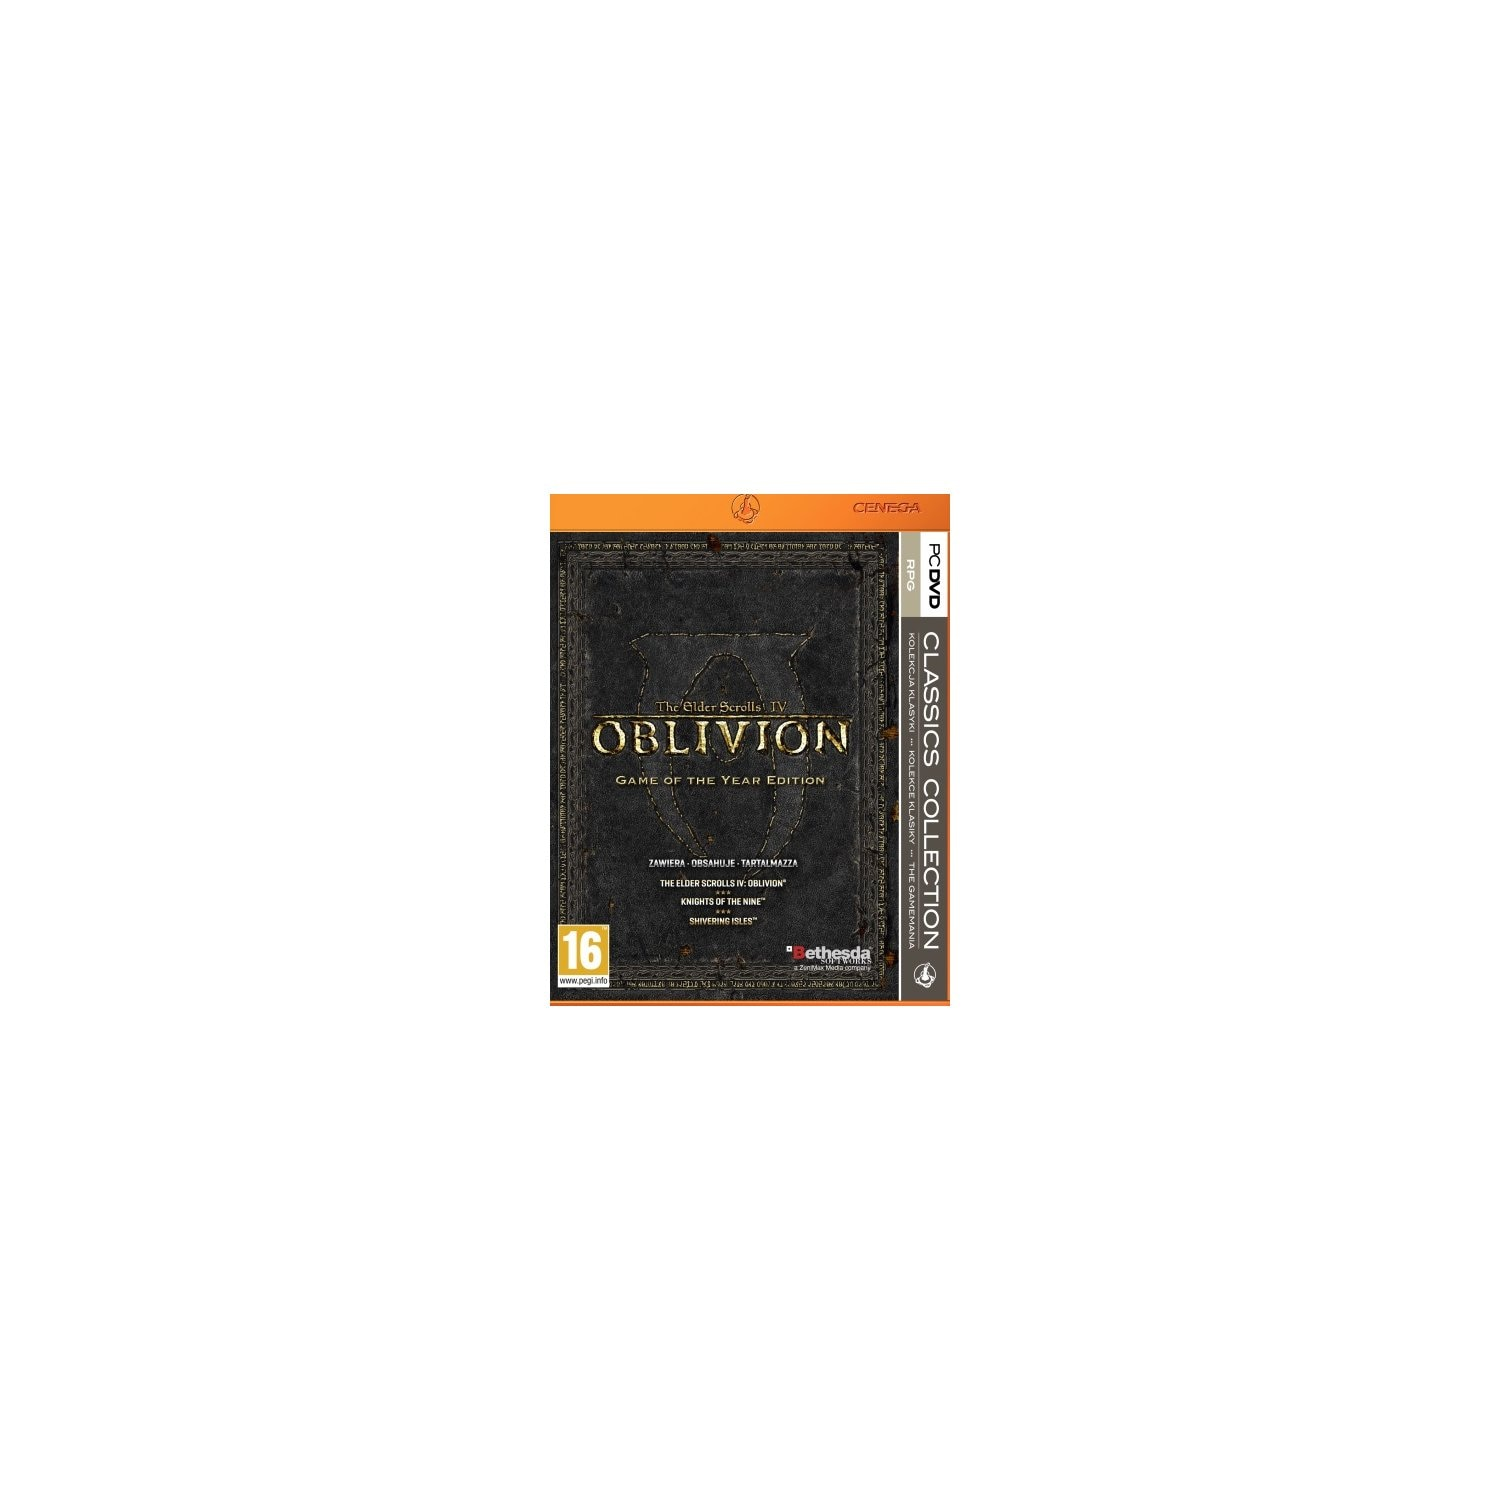 Gra PC PKK The Elder Scrolls IV: Oblivion Game of the Year Edition